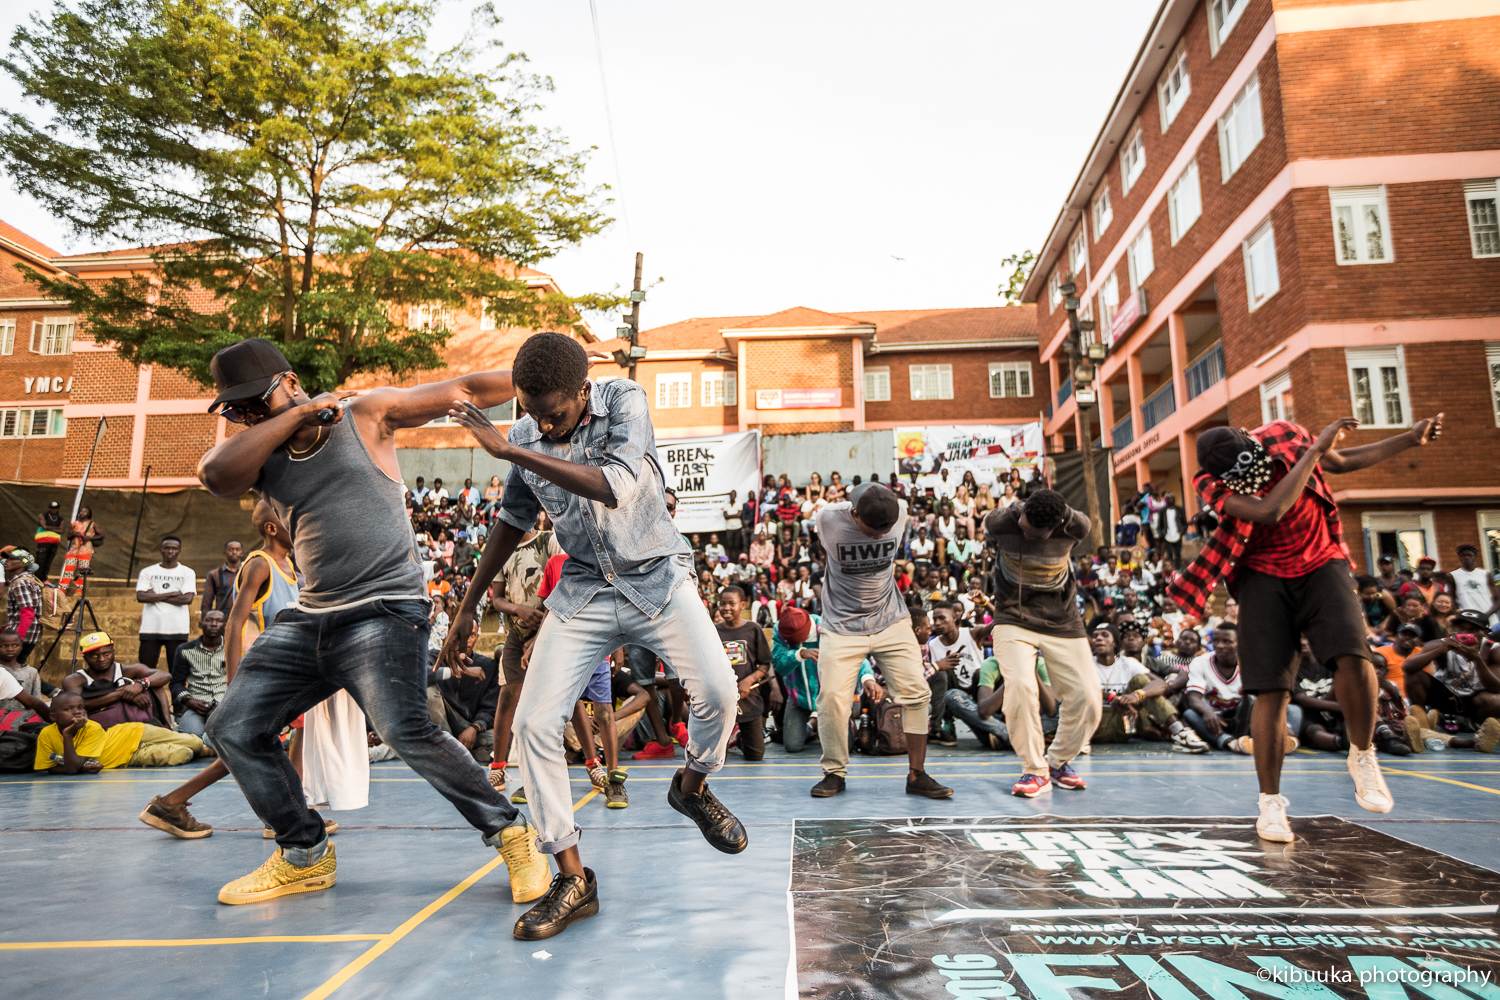 Big-Ben-UGHIPHOP-Award-winner-performing-at-breakfastjam-2016-finals-photo